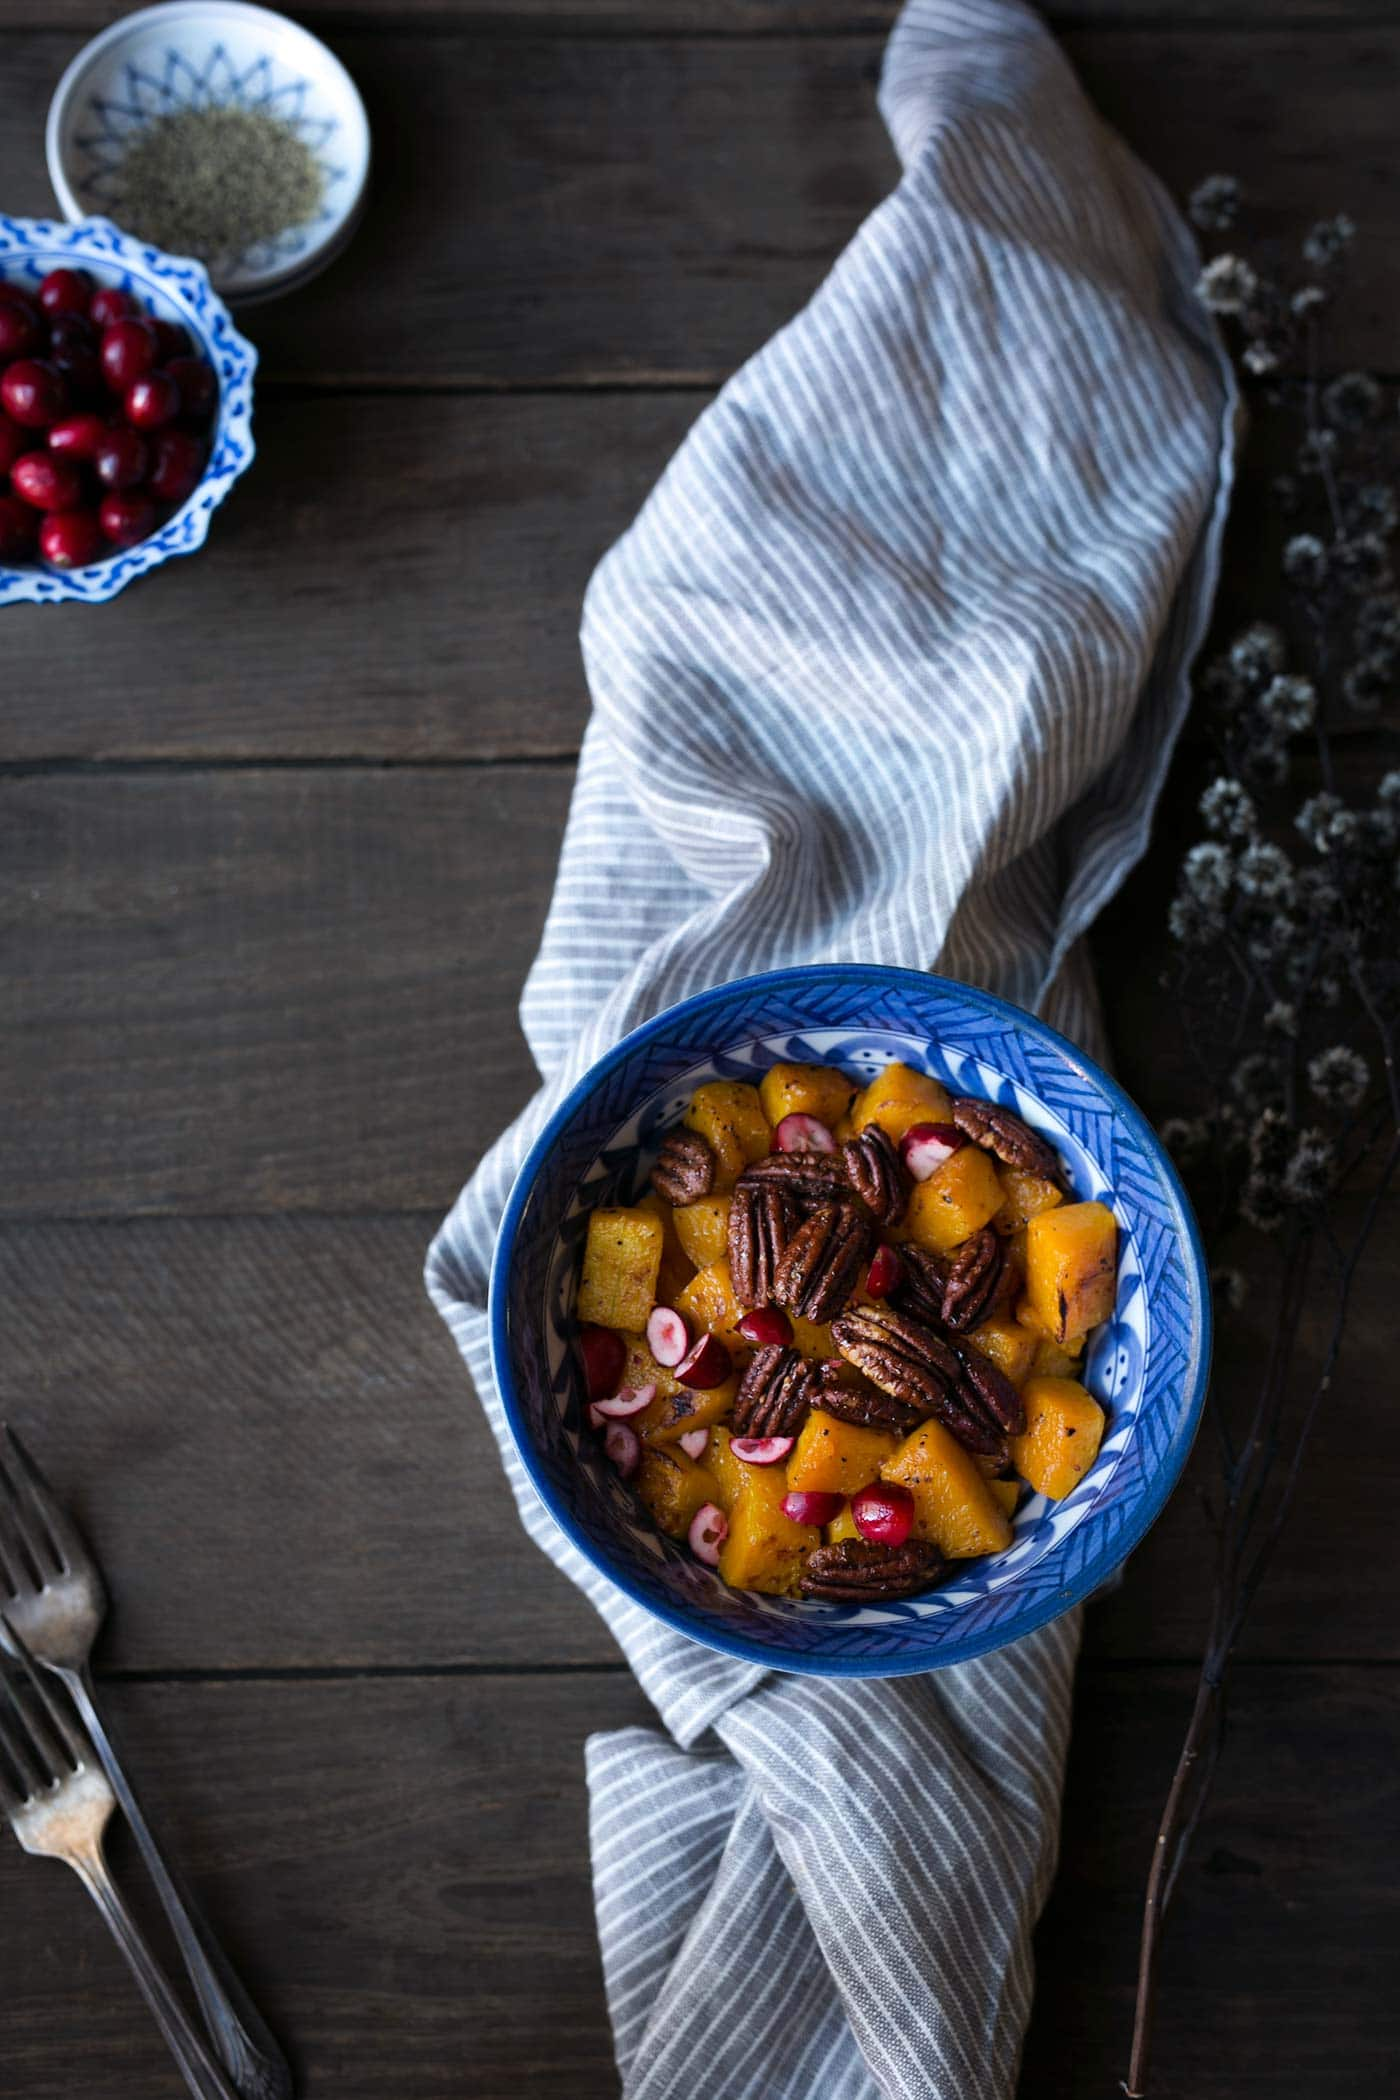 This recipe for Roasted Butternut Squash with Maple Pecans and Cranberries is a wonderful, light side dish that is healthy, filling and incredibly satisfying. Salt, pepper and olive oil add extra savoriness to the dish. Get the recipe from SavorySimple.net